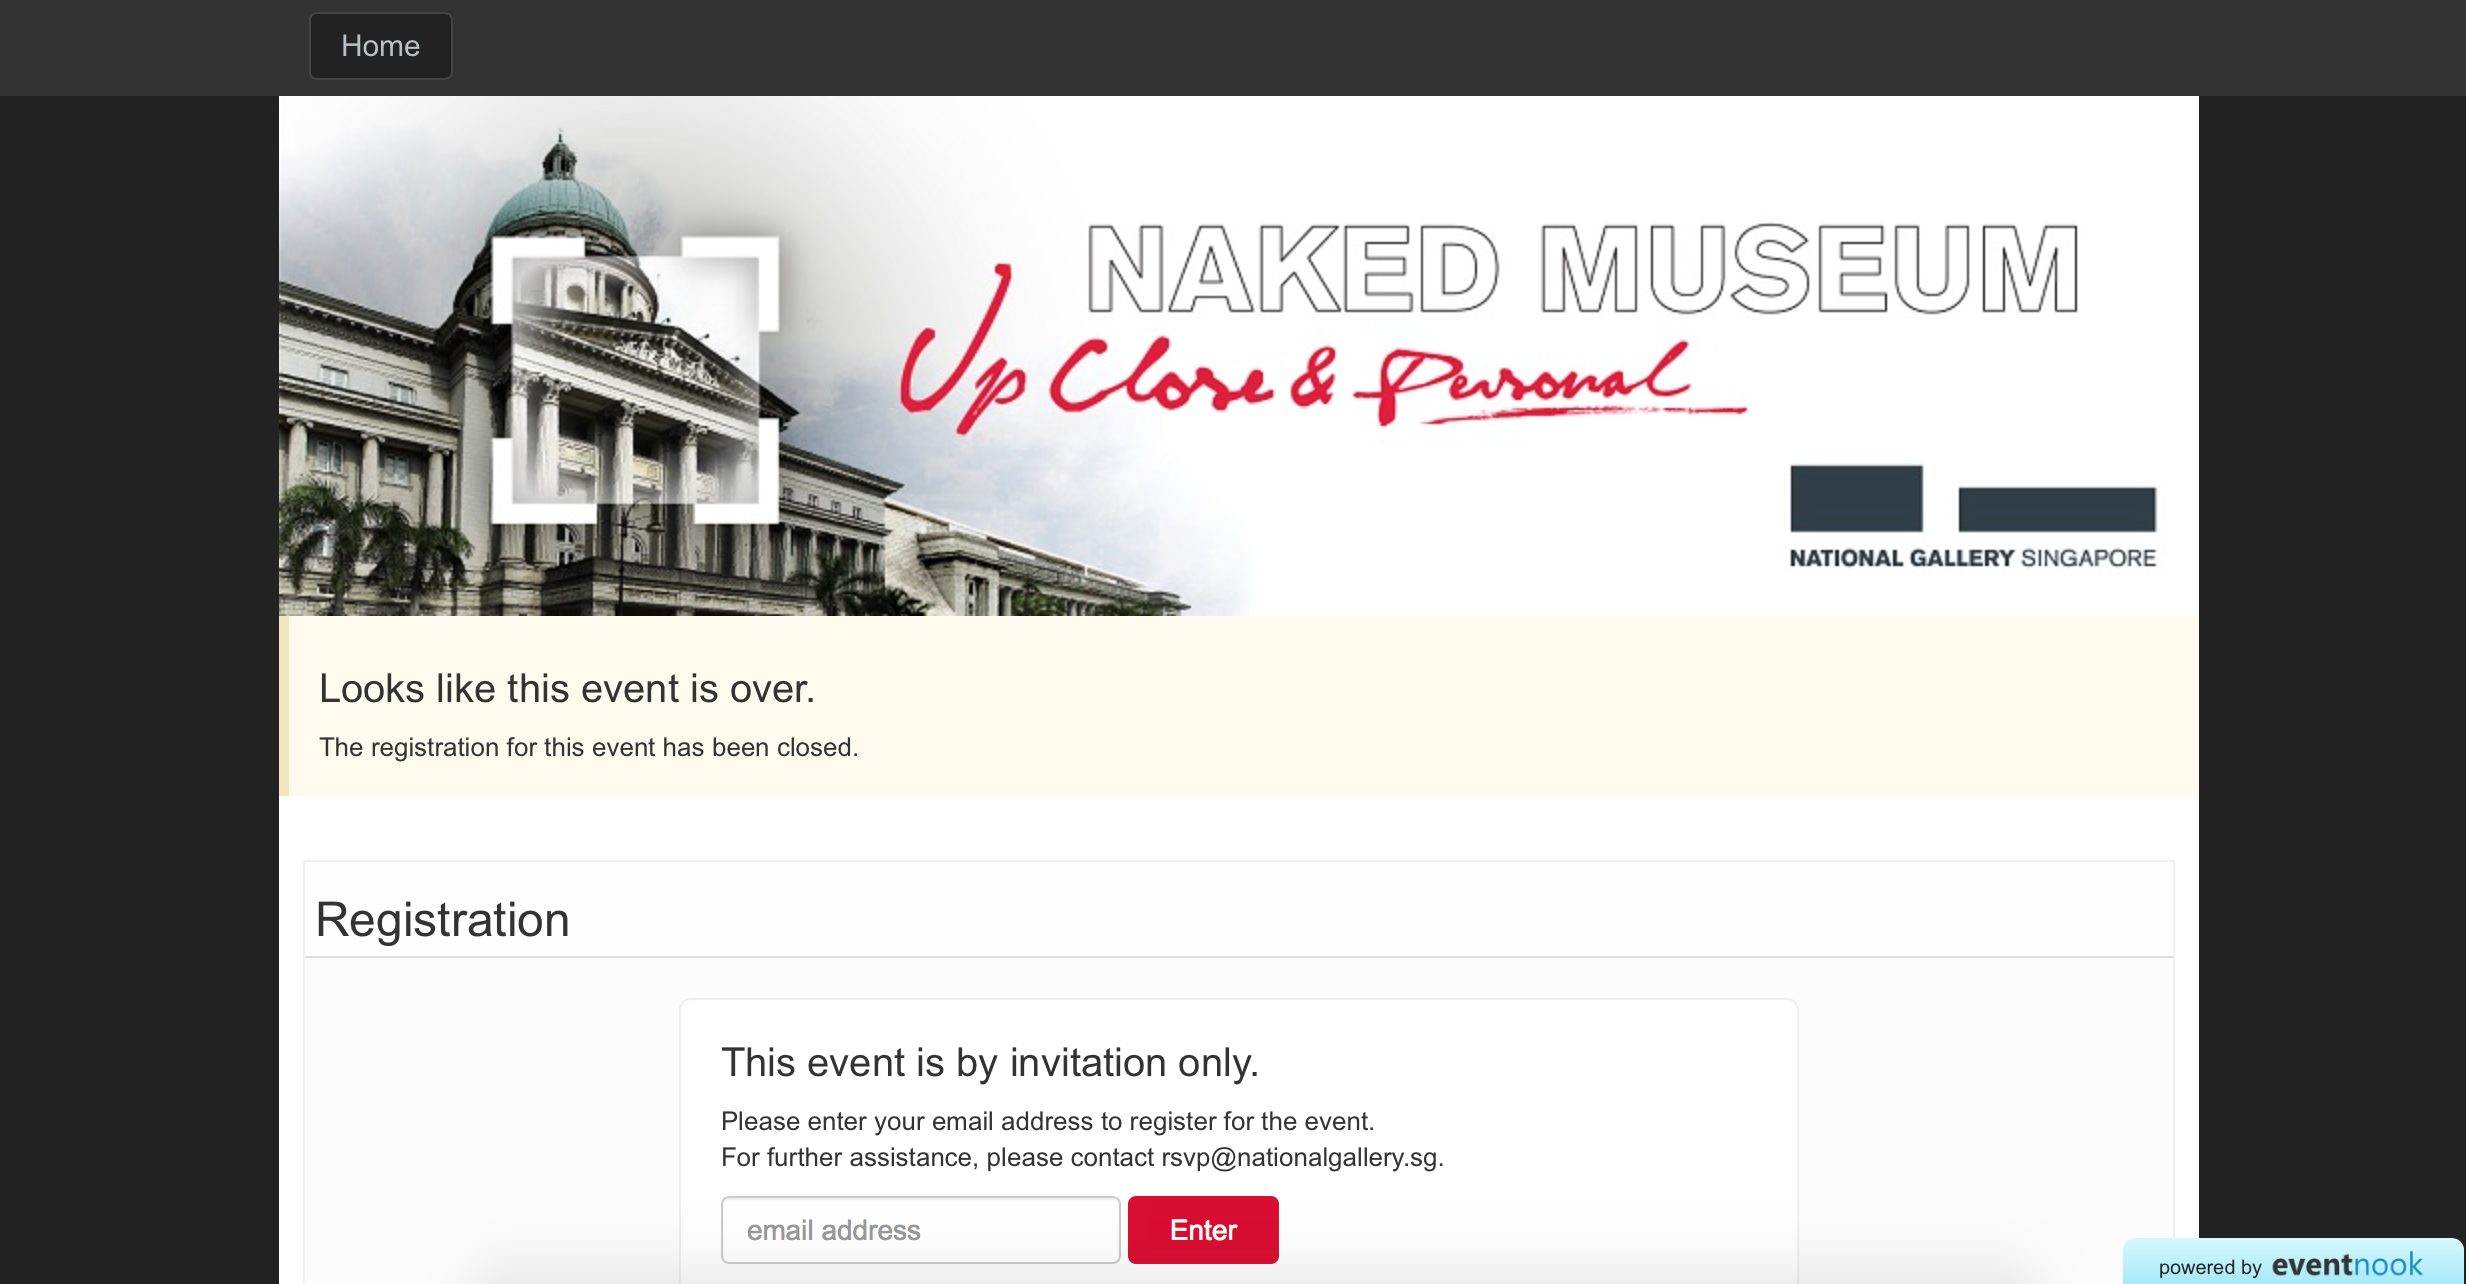 Naked Museum Guided Tour 2015